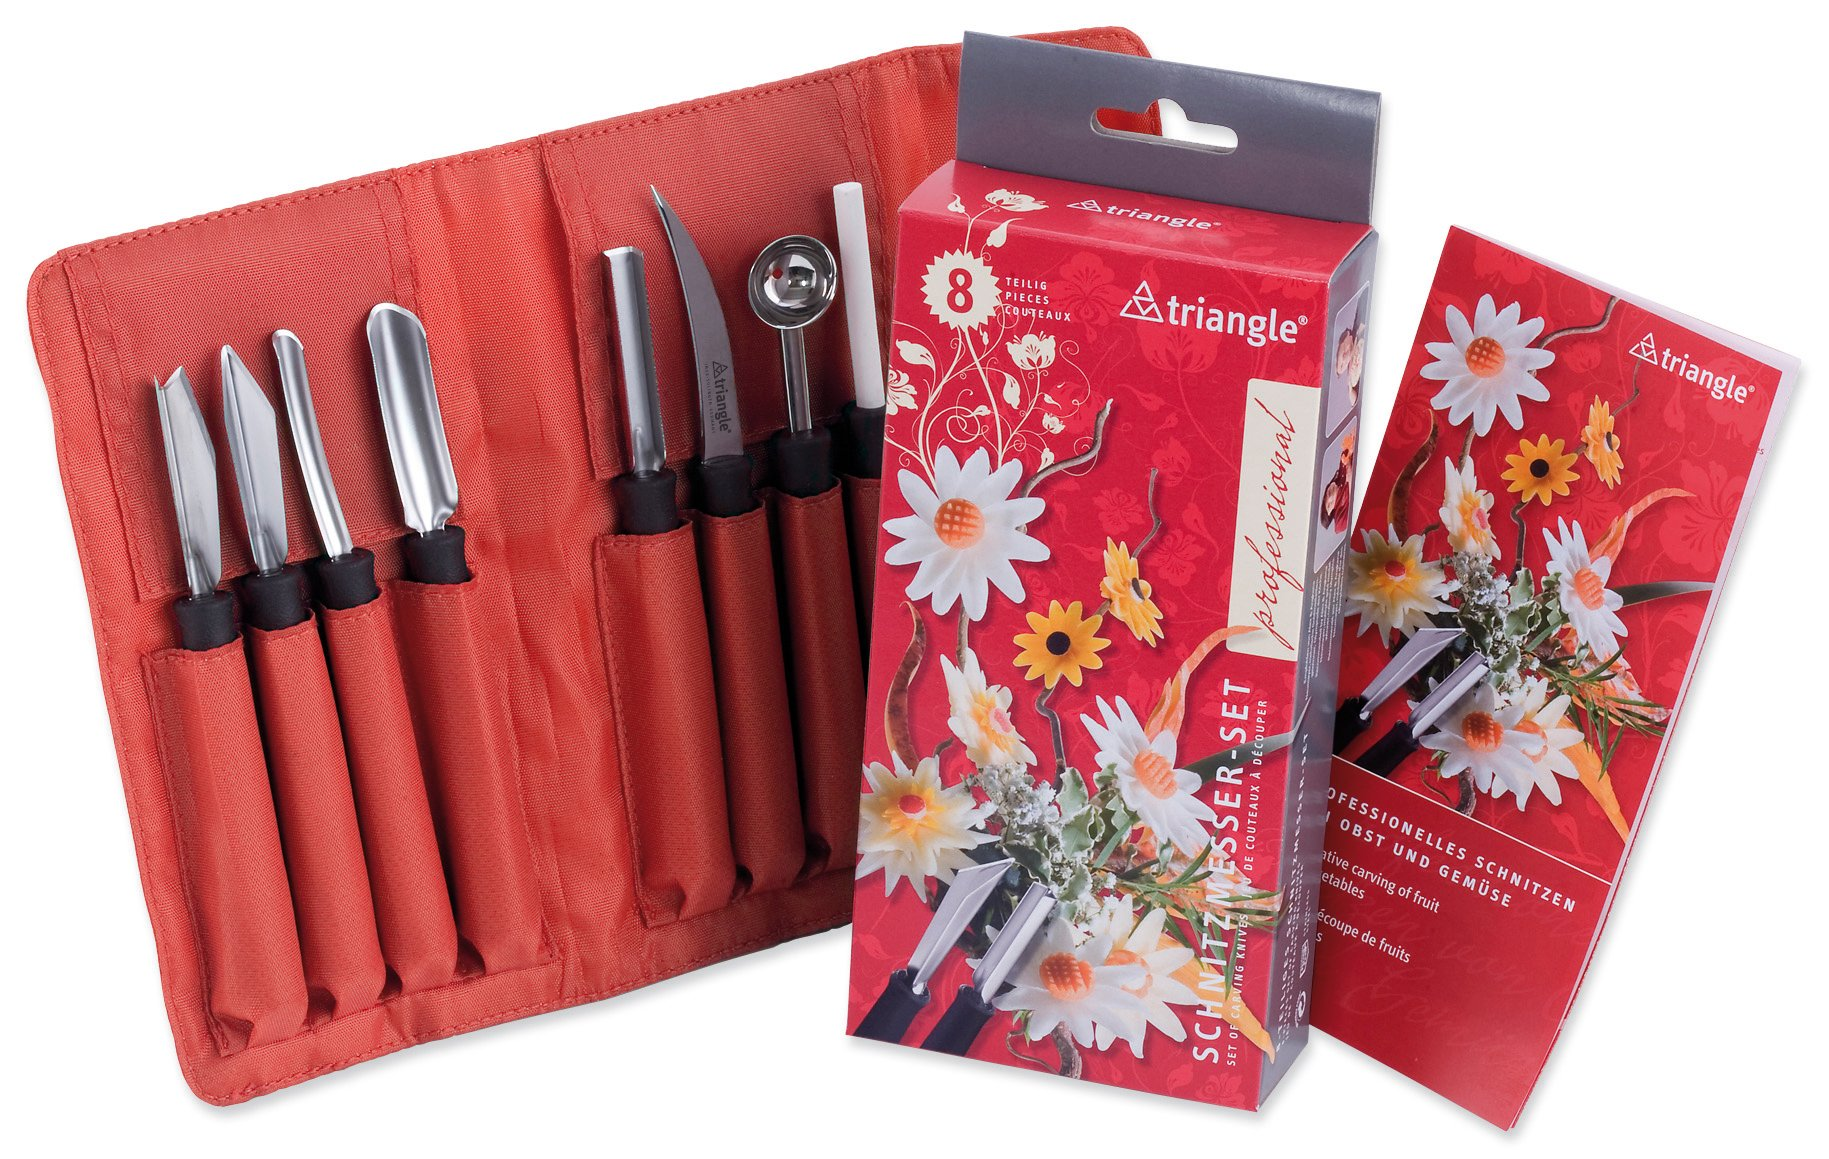 TRIANGLE Germany Professional Carving Tool Set, 8-Piece Ultra-Sharp Stainless Steel Kit Includes Various Essential Knives, Melon Baller, Sharpening Stone and Roll-up Carrying Case